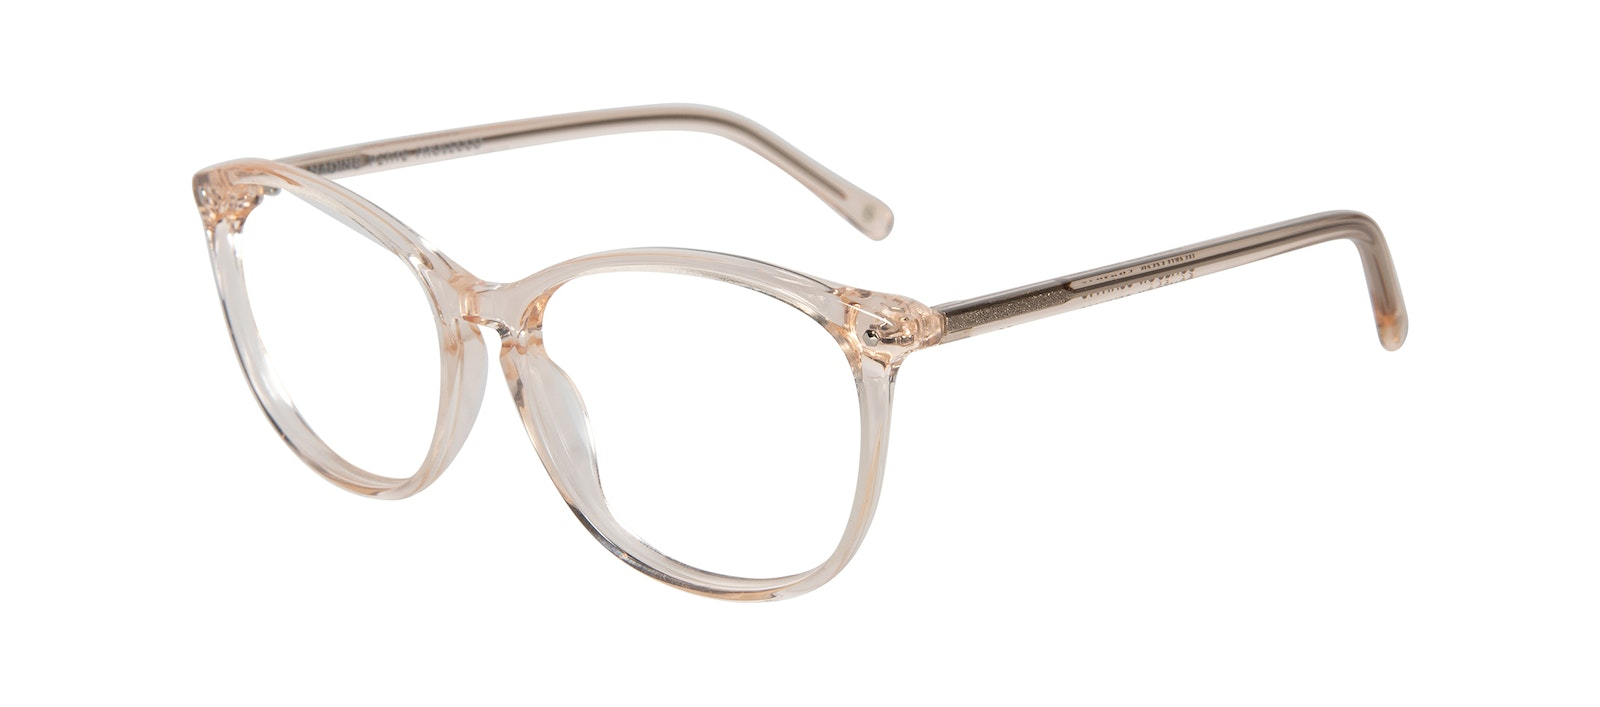 Affordable Fashion Glasses Round Eyeglasses Women Nadine Petite Prosecco Tilt